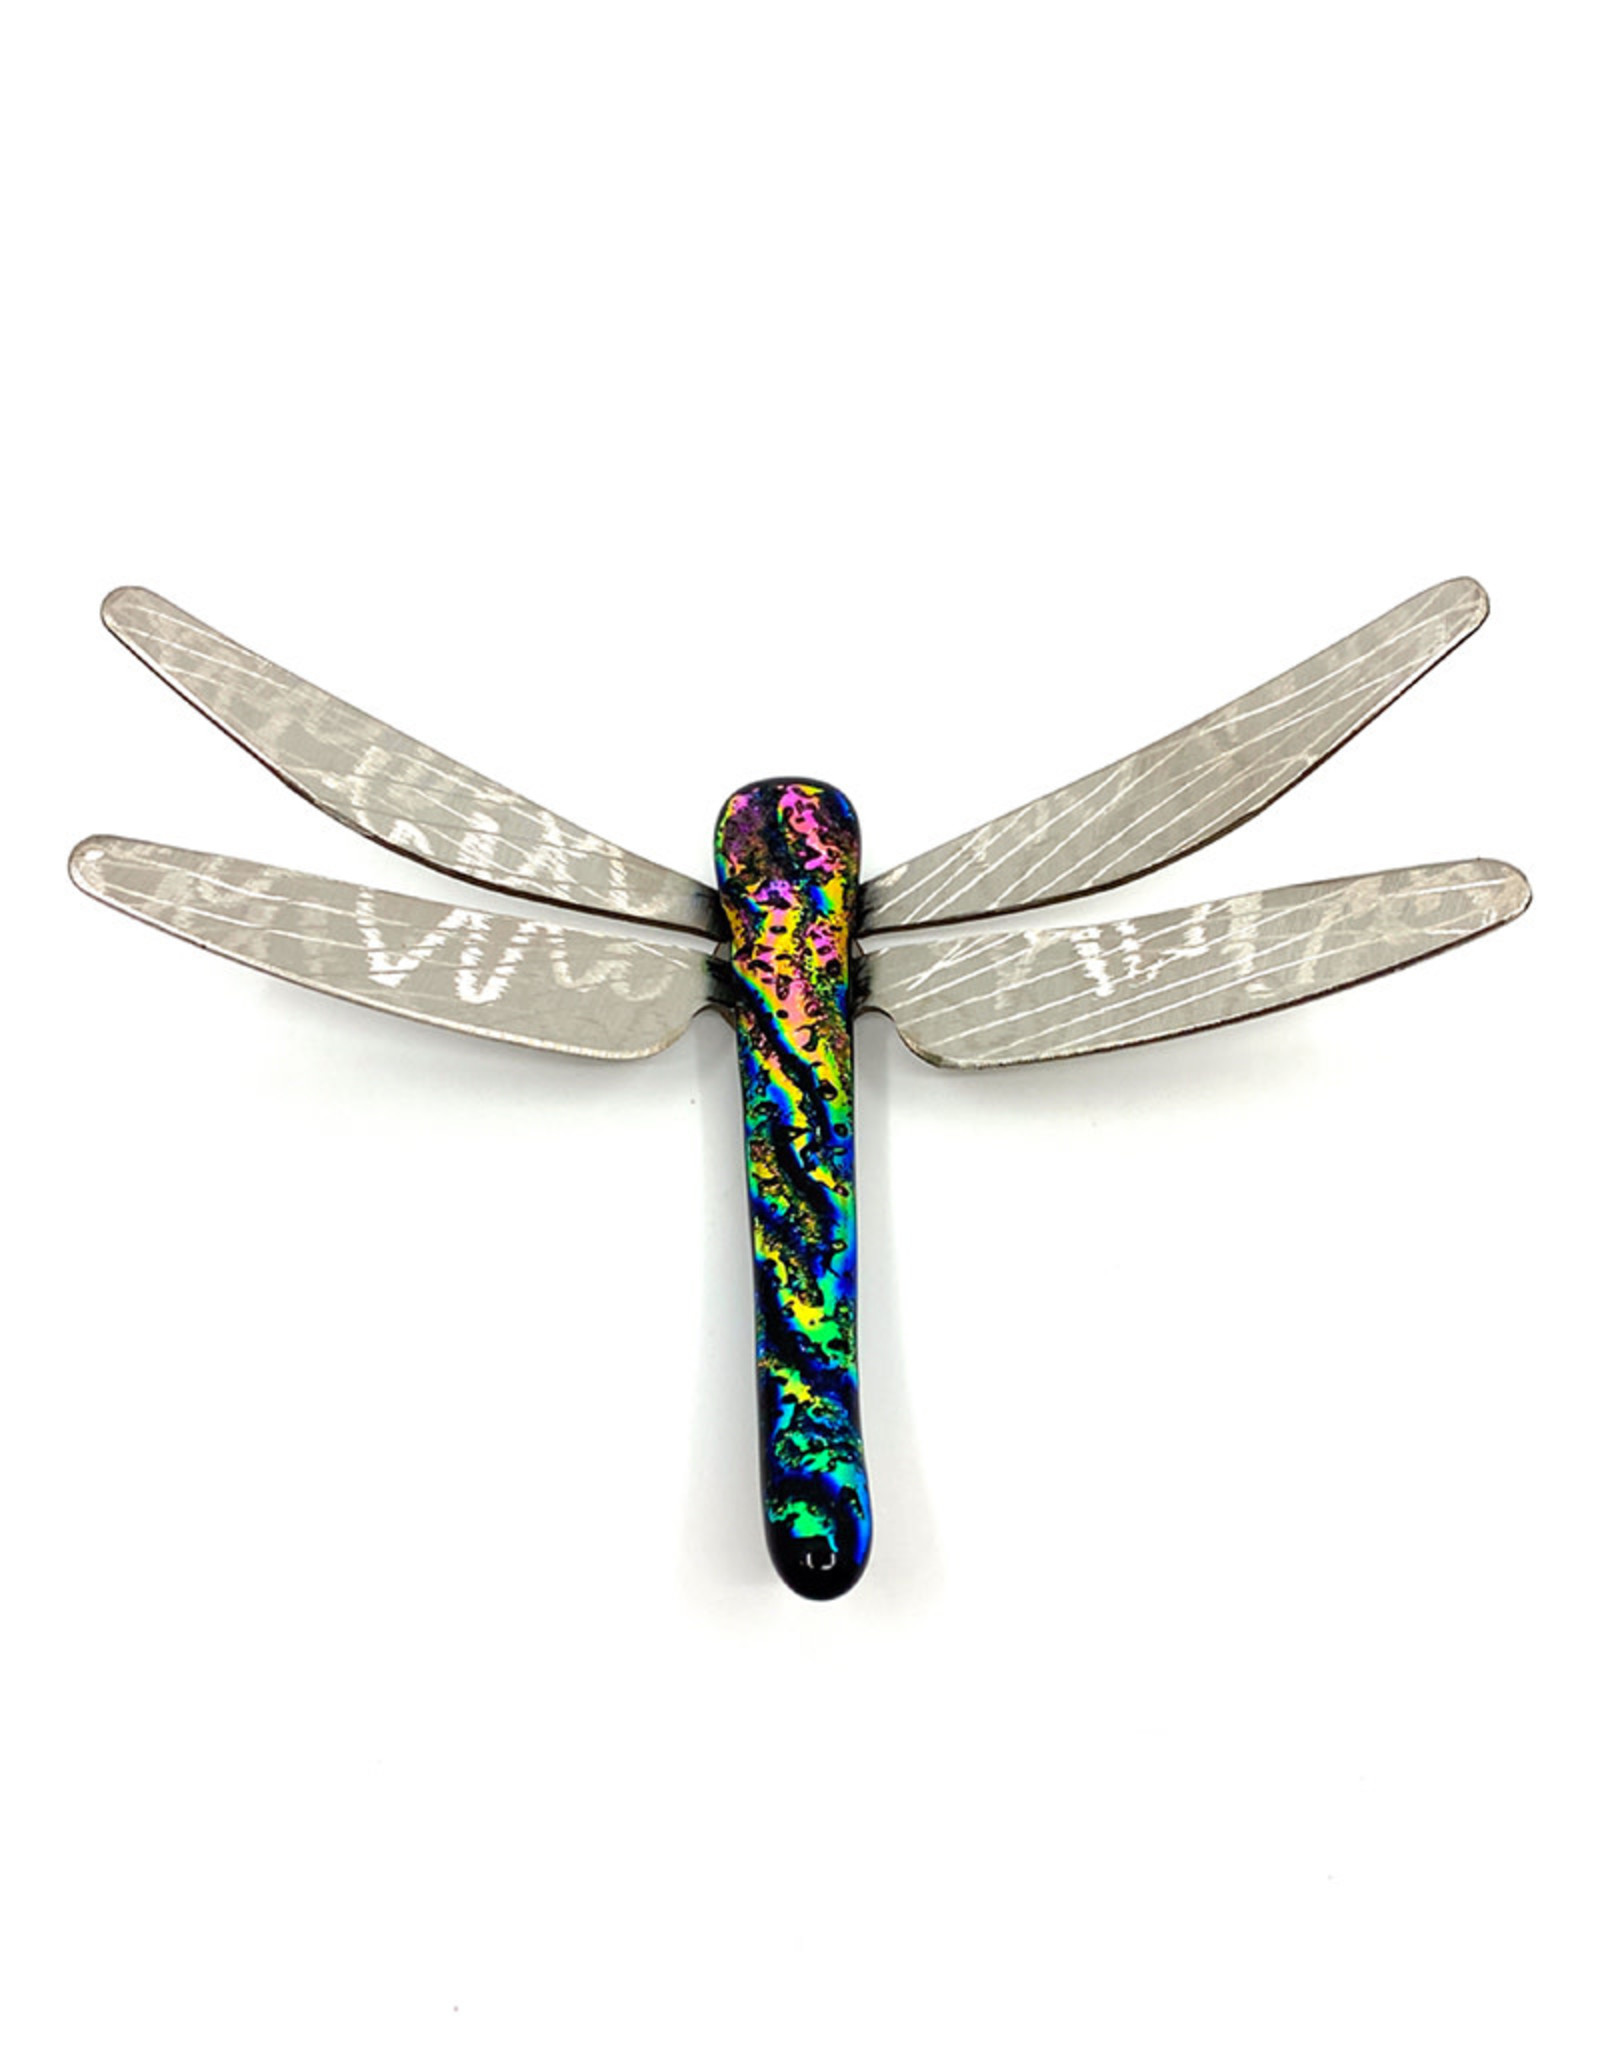 RUNNING ROCK ART 6'' DICHROIC DRAGONFLY WALL ACCENT